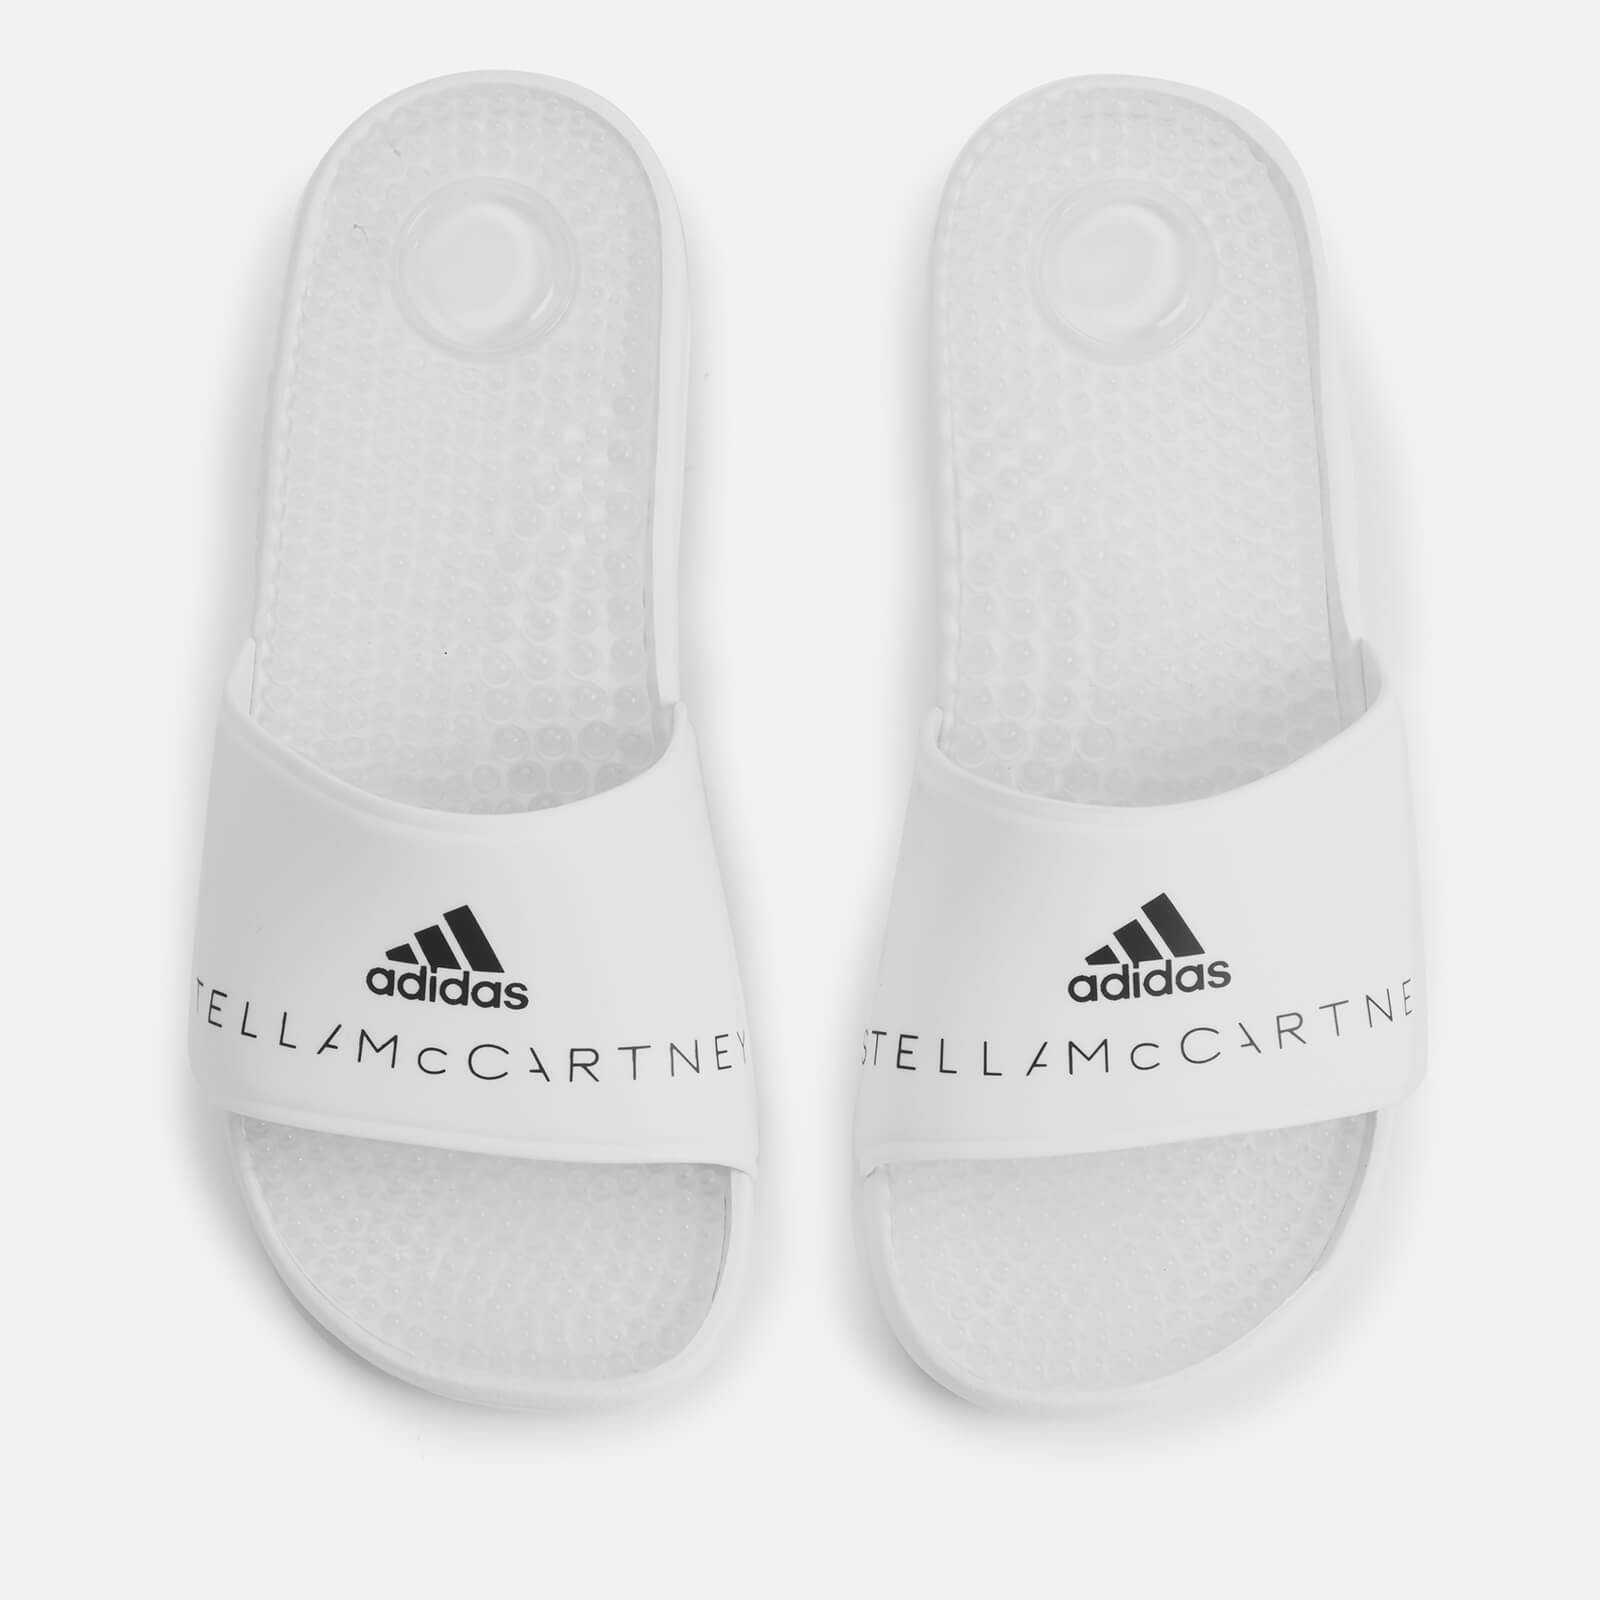 3682279a3 adidas by Stella McCartney Women s Adissage Slide Sandals - White Black -  Free UK Delivery over £50